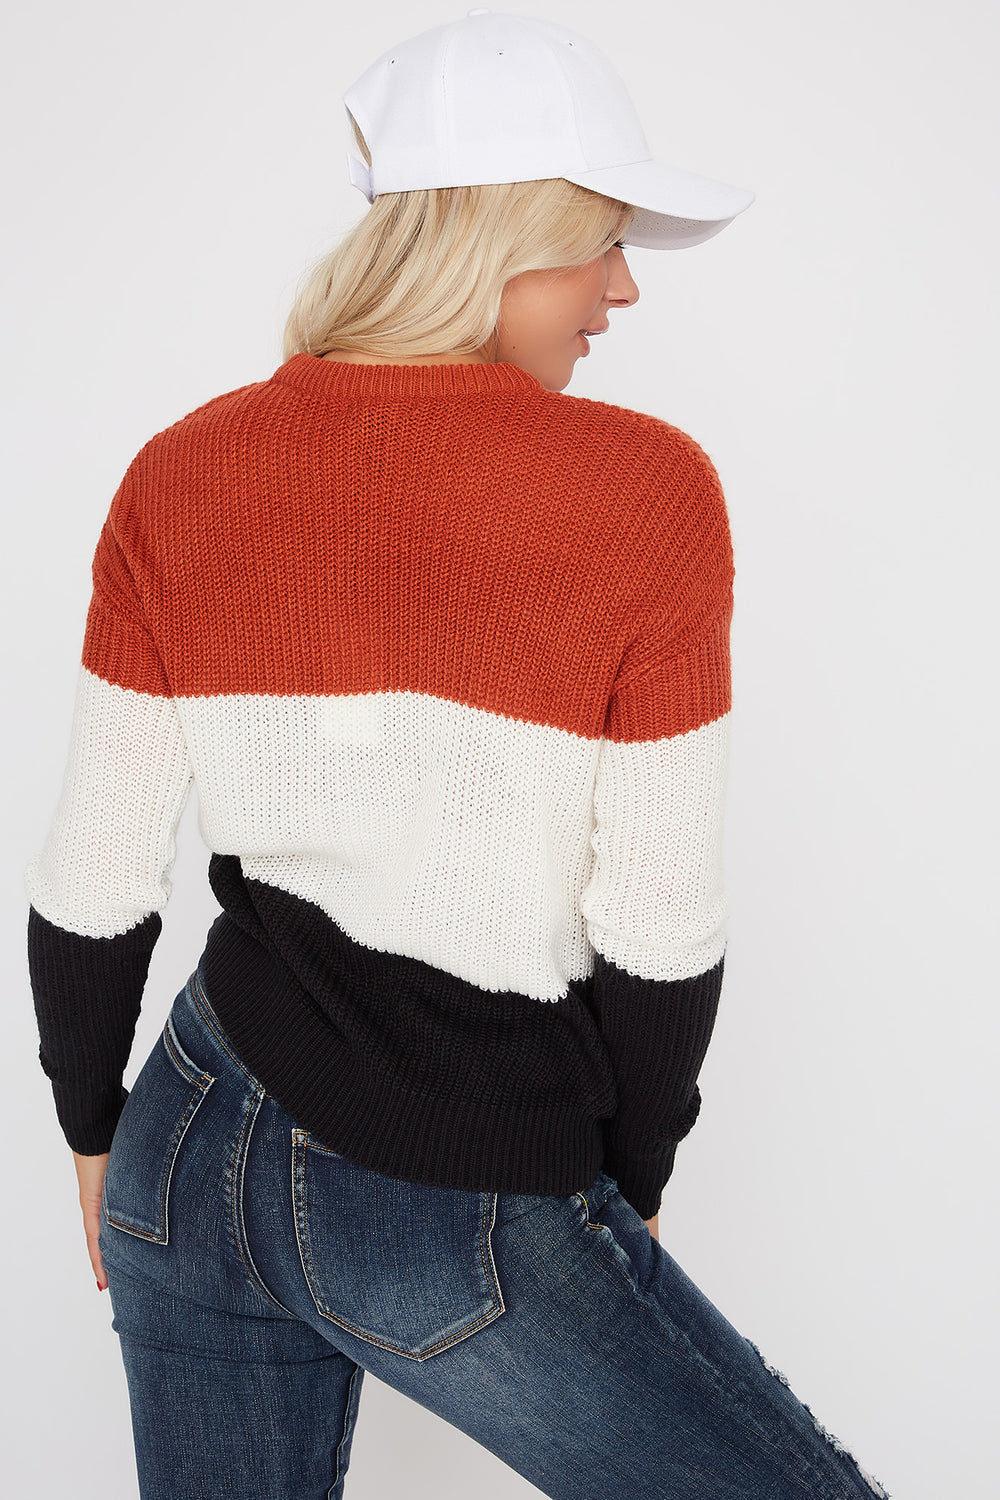 Colour Block Knit Sweater Rust